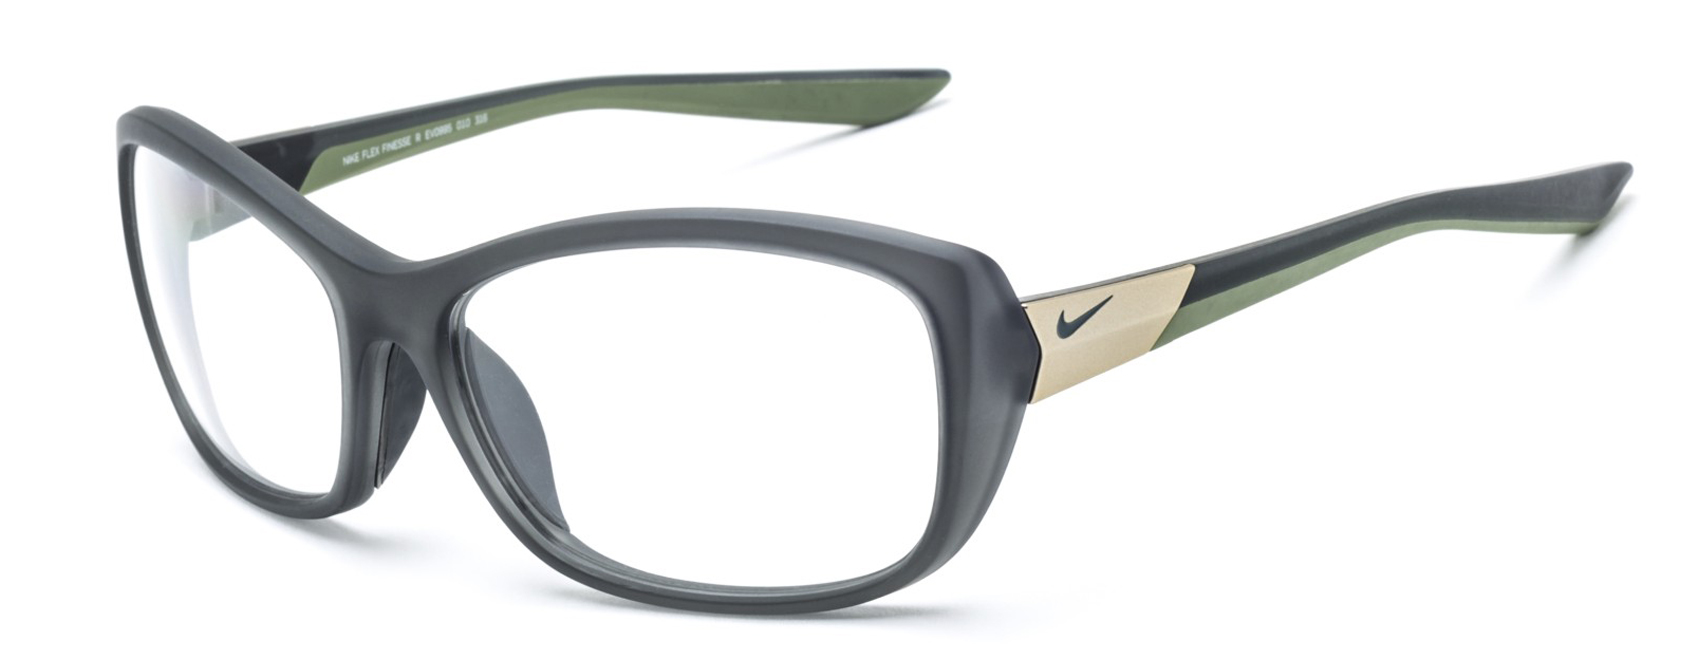 Nike Finesse Lead Glasses